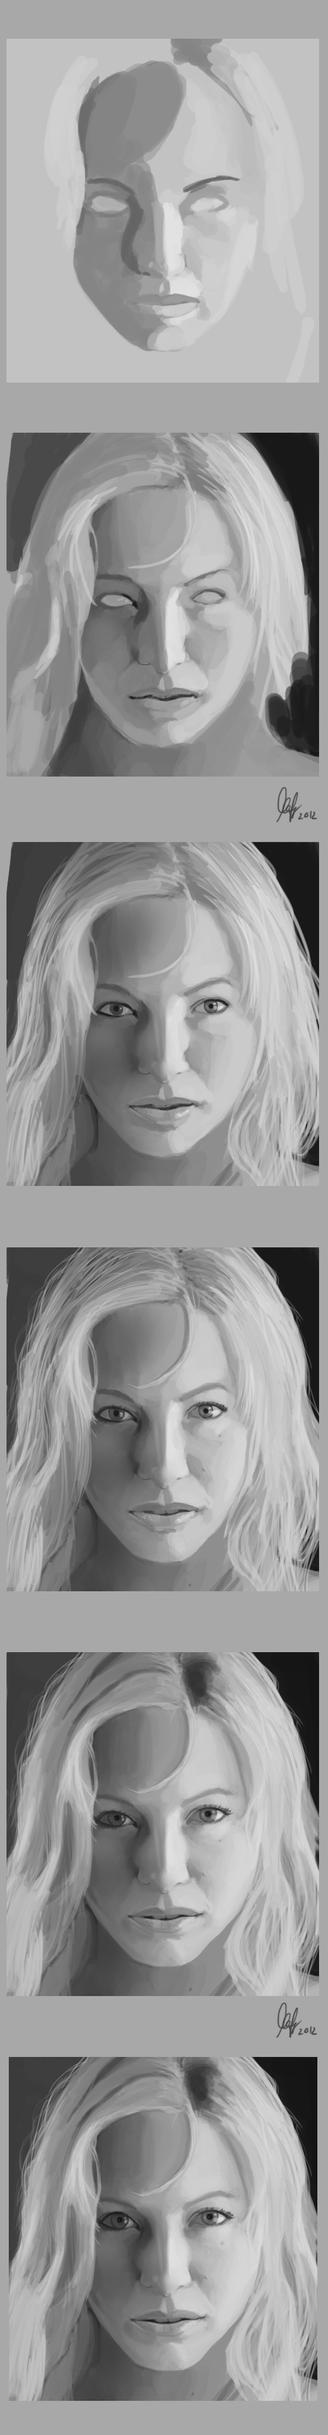 Monochrome face progress by ienkub